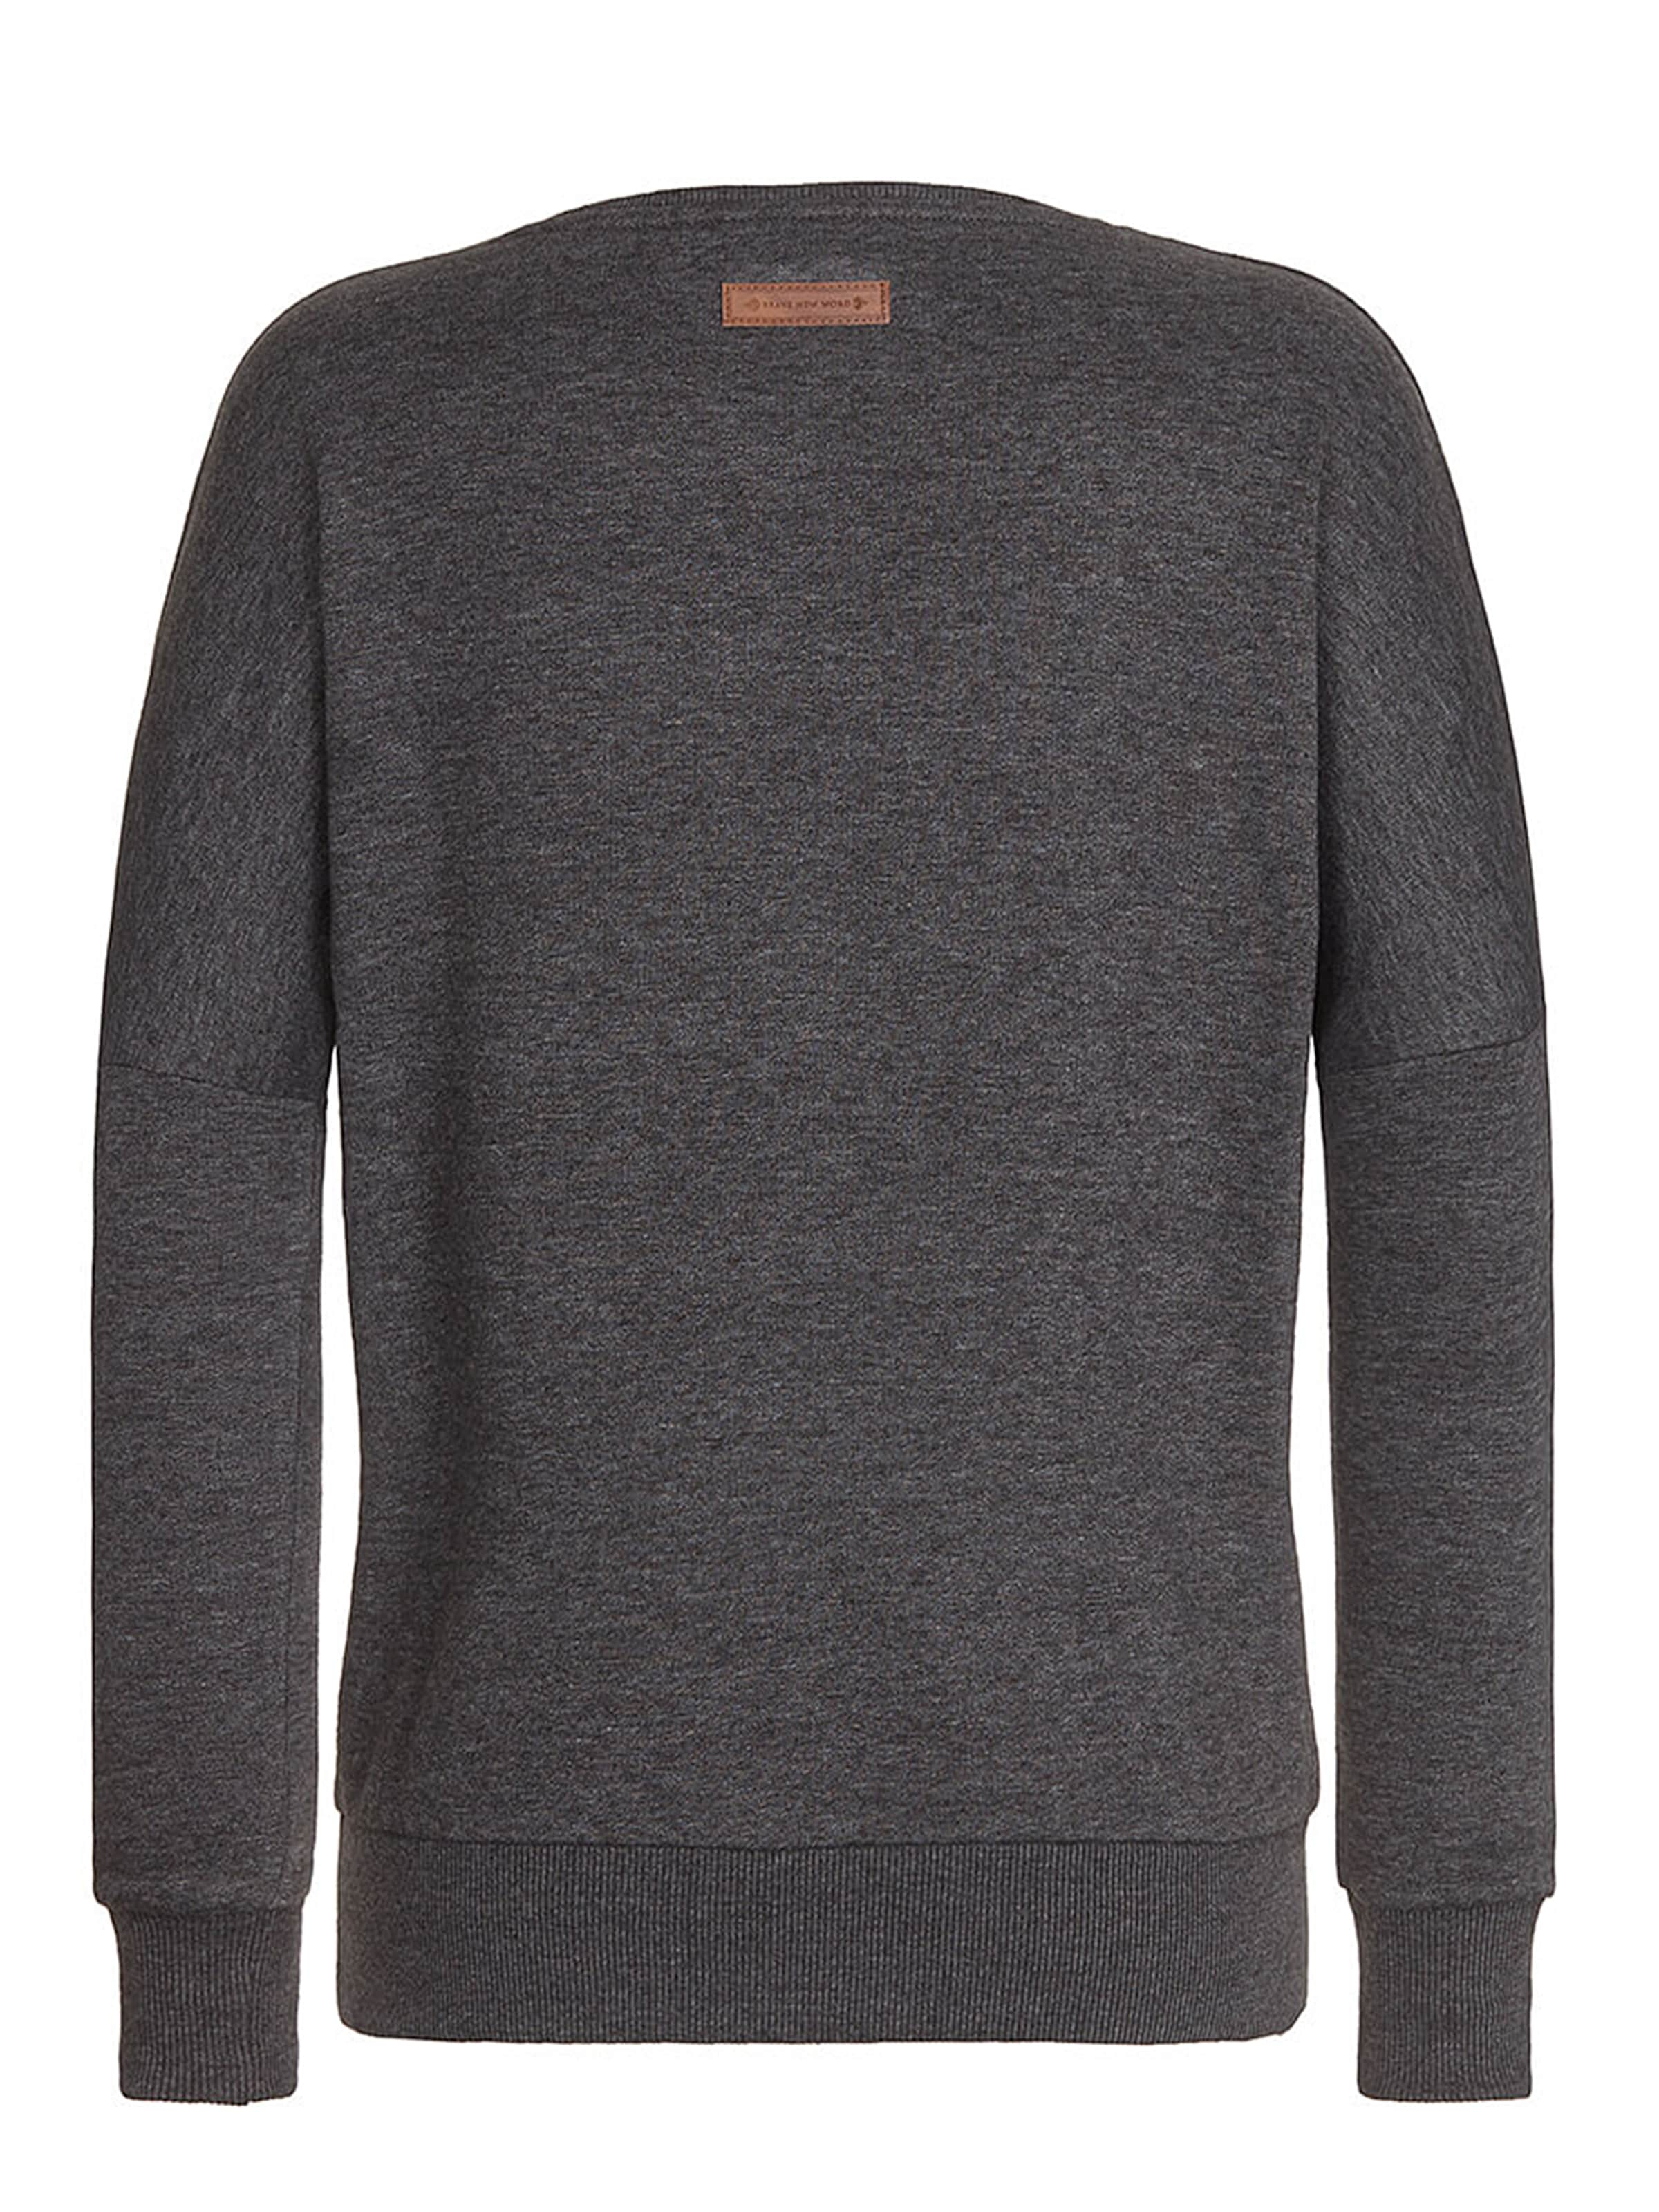 Sikis Stunden Anthracite Sport' Sweat Naketano En shirt '2 9DEIH2